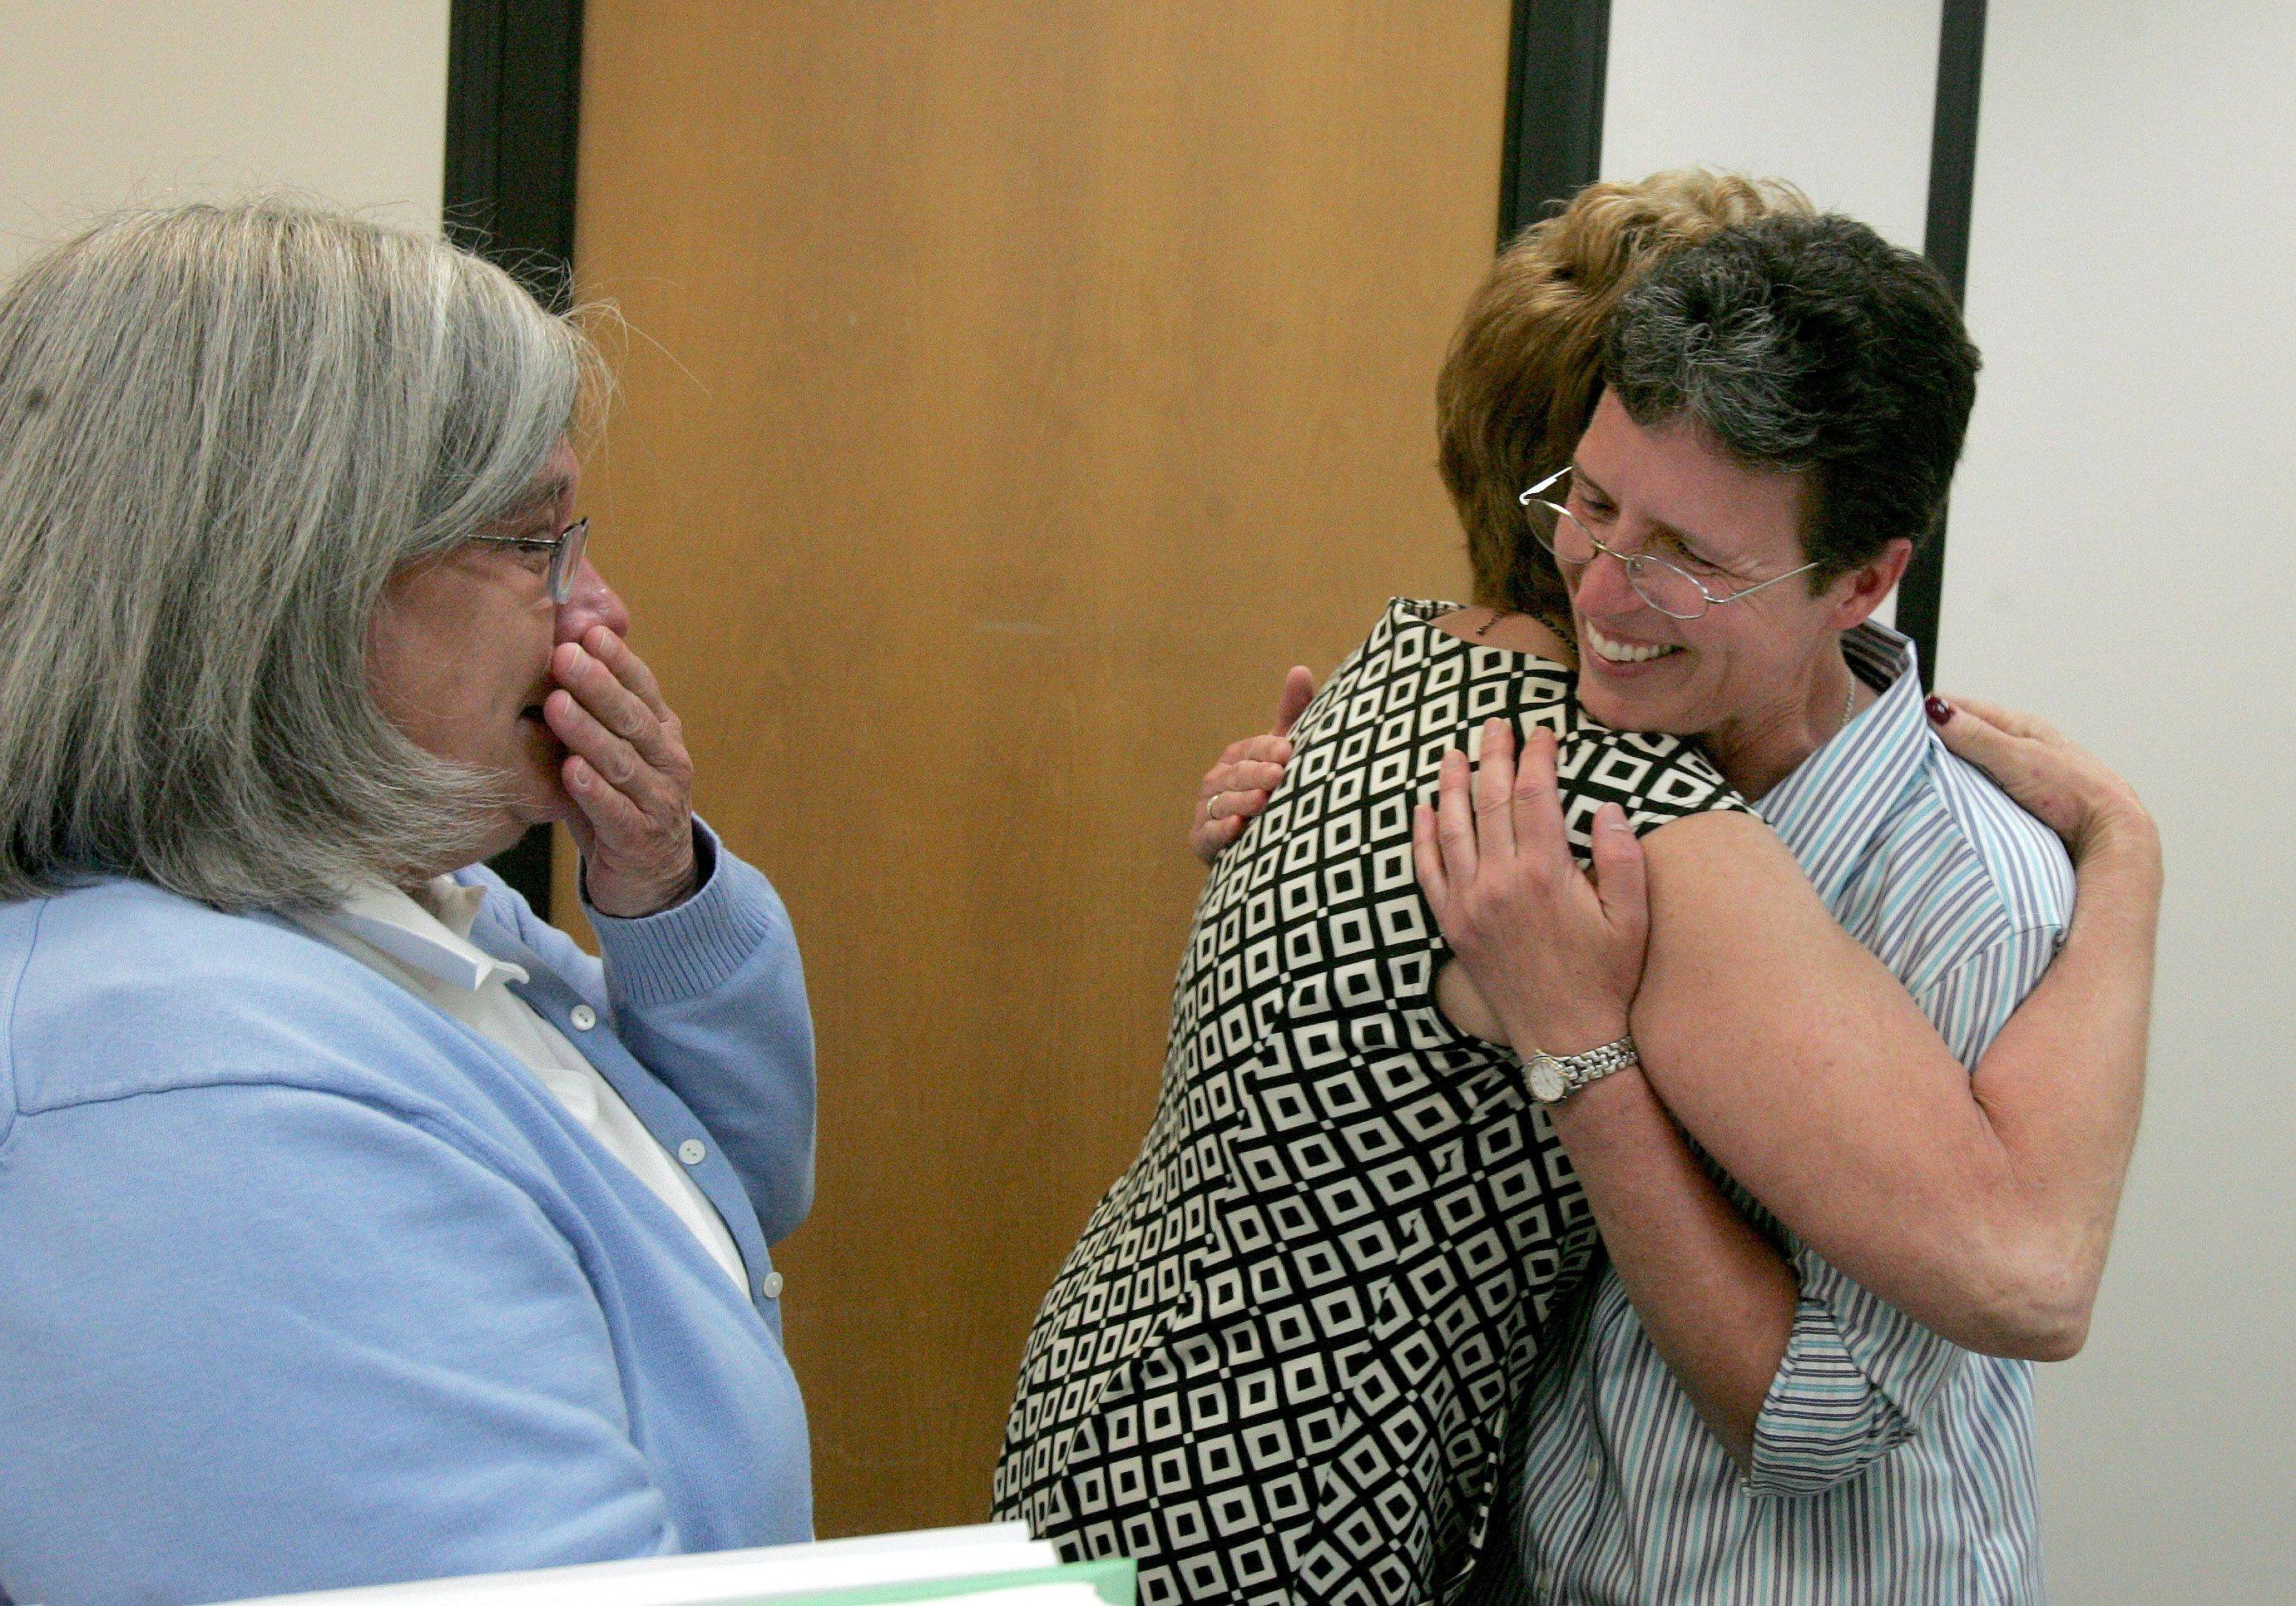 Barb McMillan, left and Roseann Szalkowski, right, of Roselle, get a hug from supervisor Judi Wilkovich at the DuPage County Clerk's office in Wheaton on Wednesday. The couple had just received their civil union license. It was the first day that gay couples could get a civil union license in the state of Illinois.